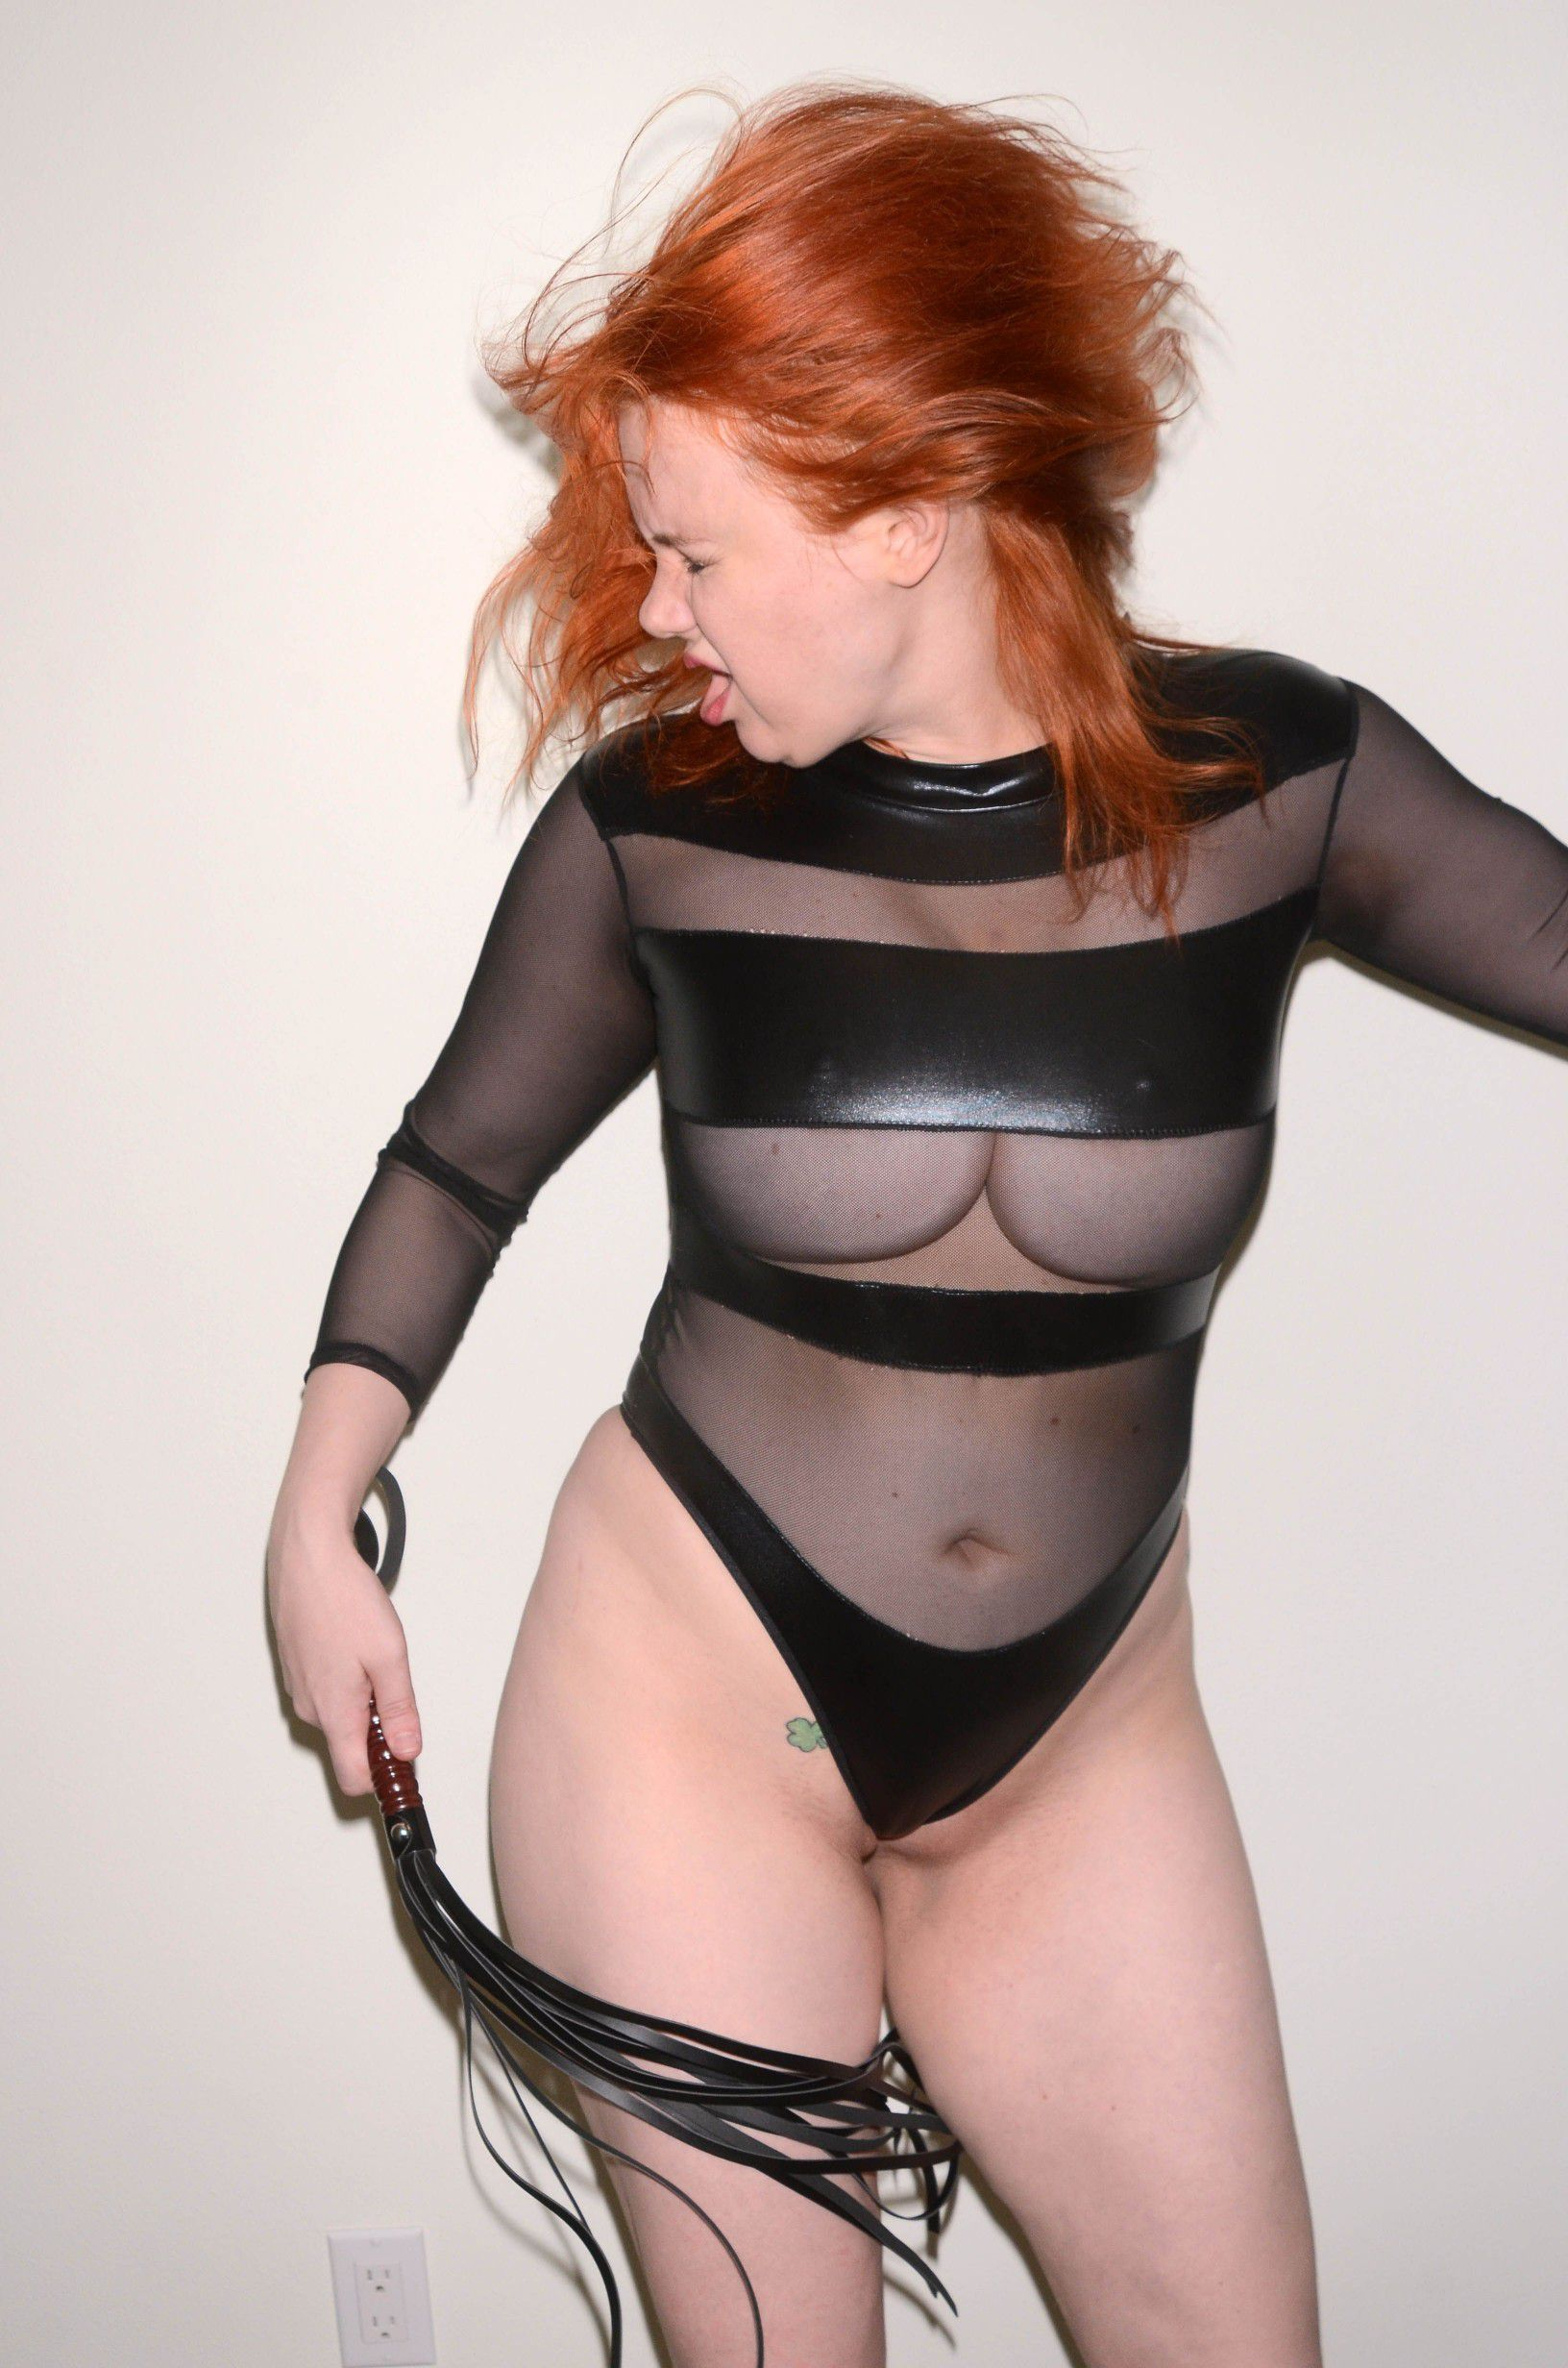 maitland-ward-almost-naked-for-rubber-magazine-boobs-pussy-3968